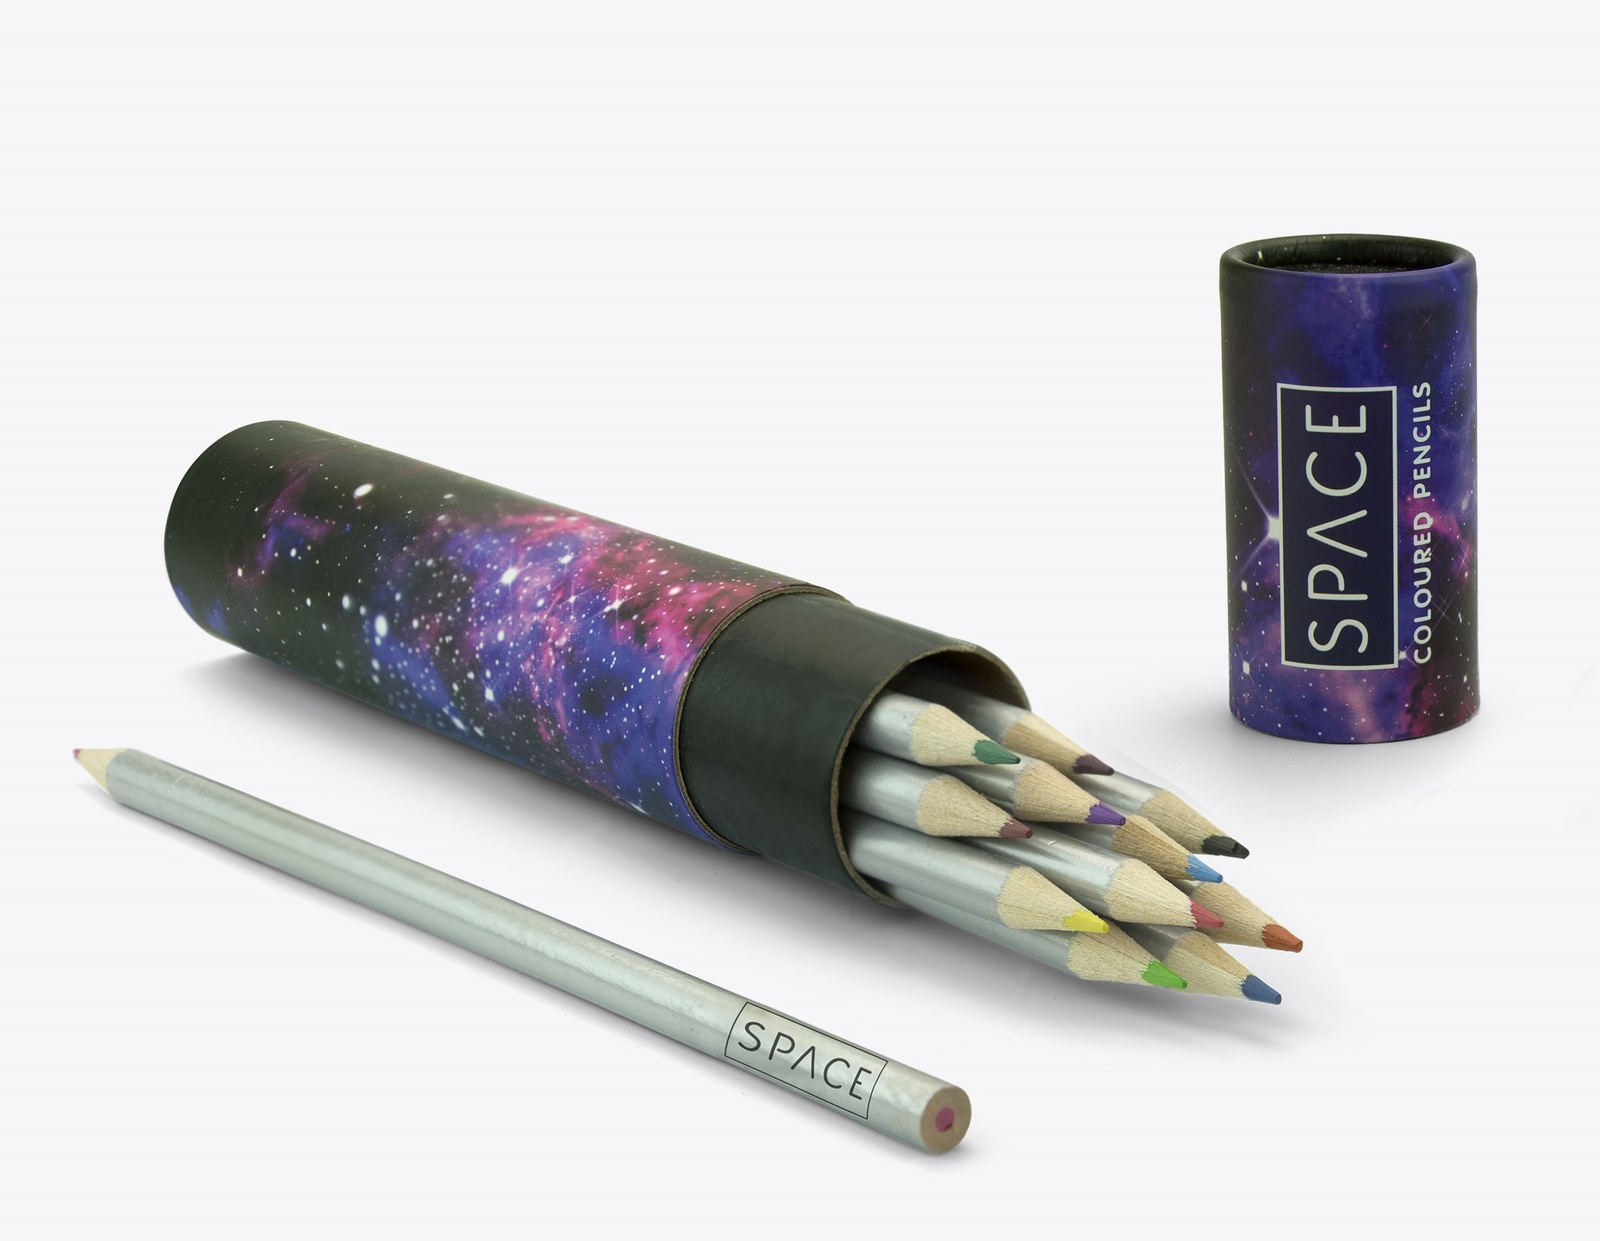 Space Pencils - Pencils in a Tube (12 pack) image